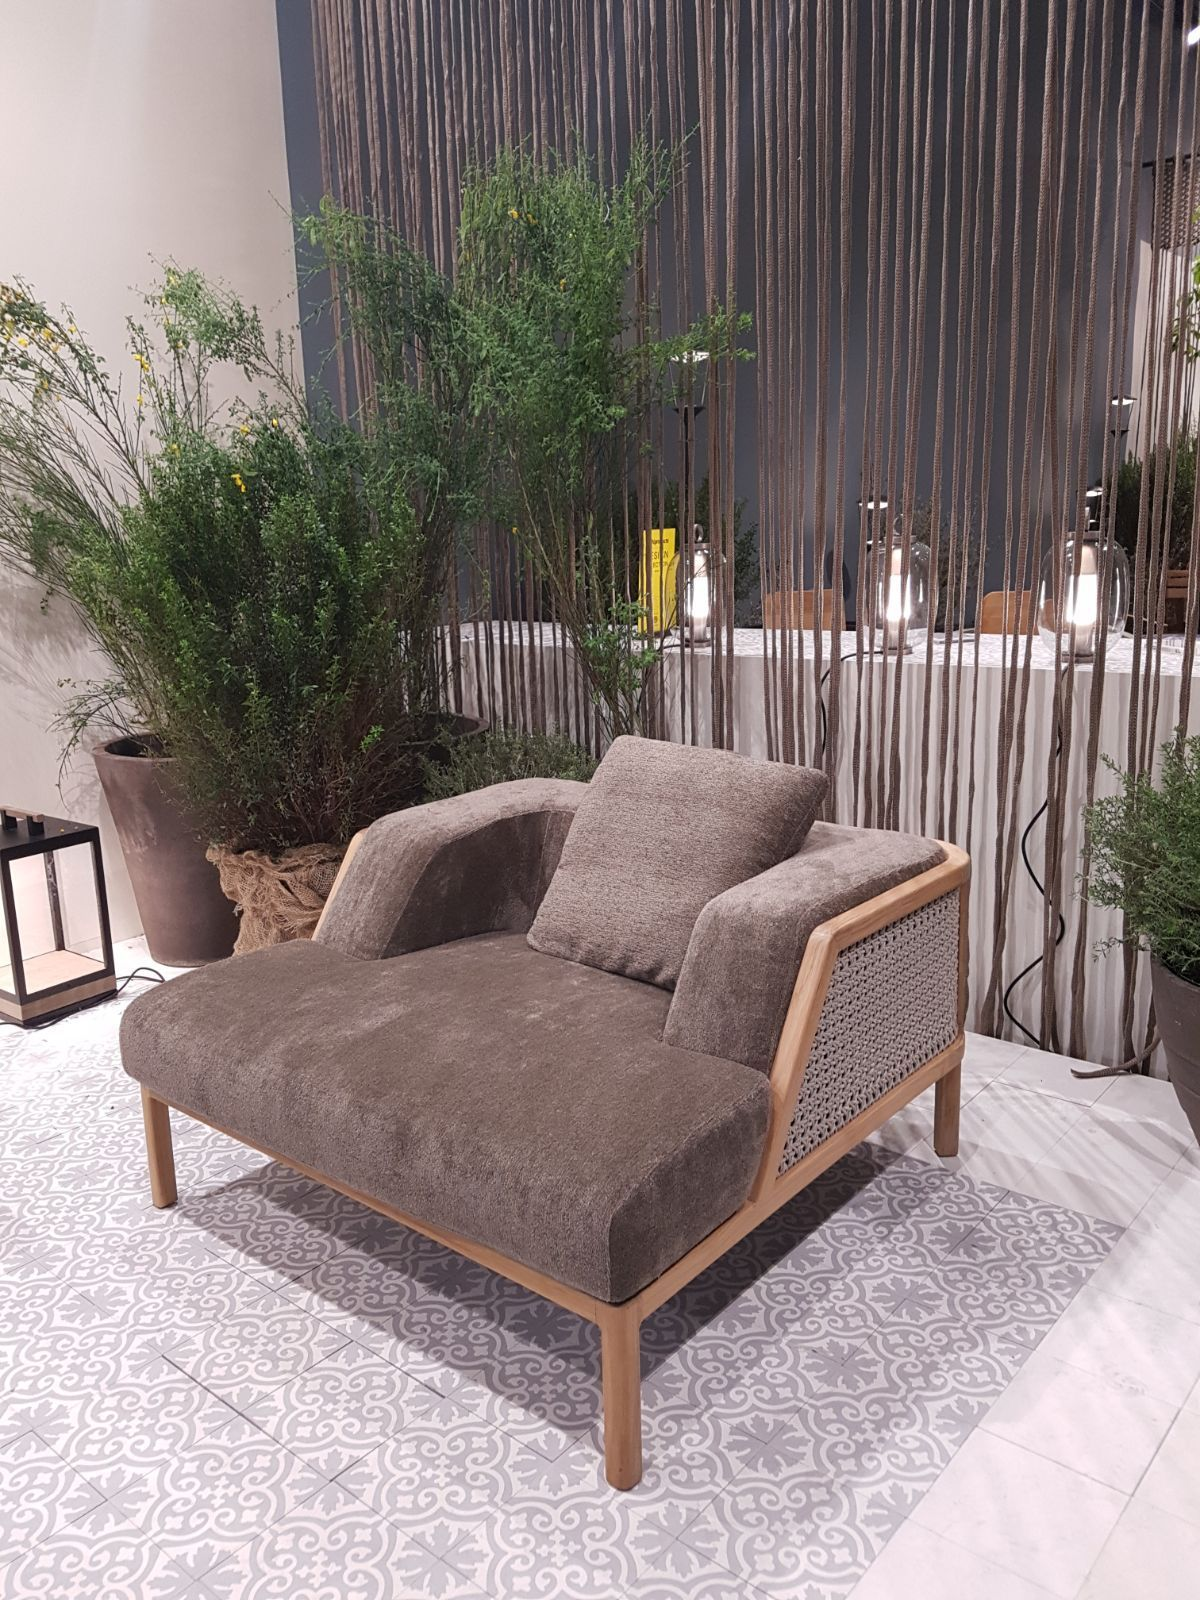 Chill Out Möbel Ethimo Lounge Chair At Salone Del Mobile Milano 2018 Get Comfy